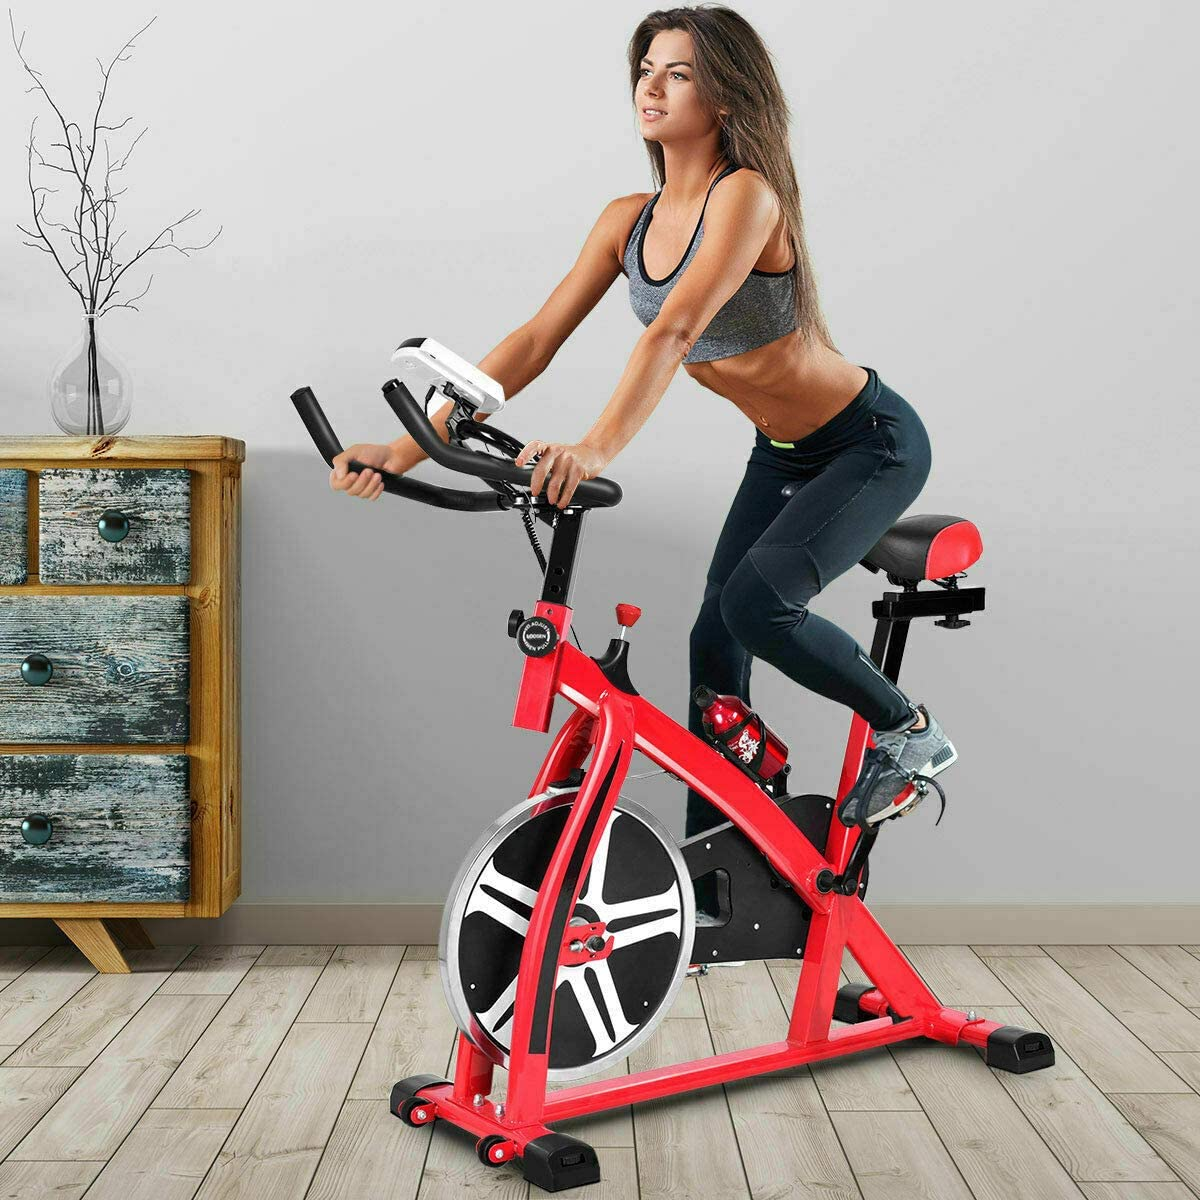 Home Fit Exercise Bike Fitness Cycling Stationary Bicycle Cardio Workout w//LCD